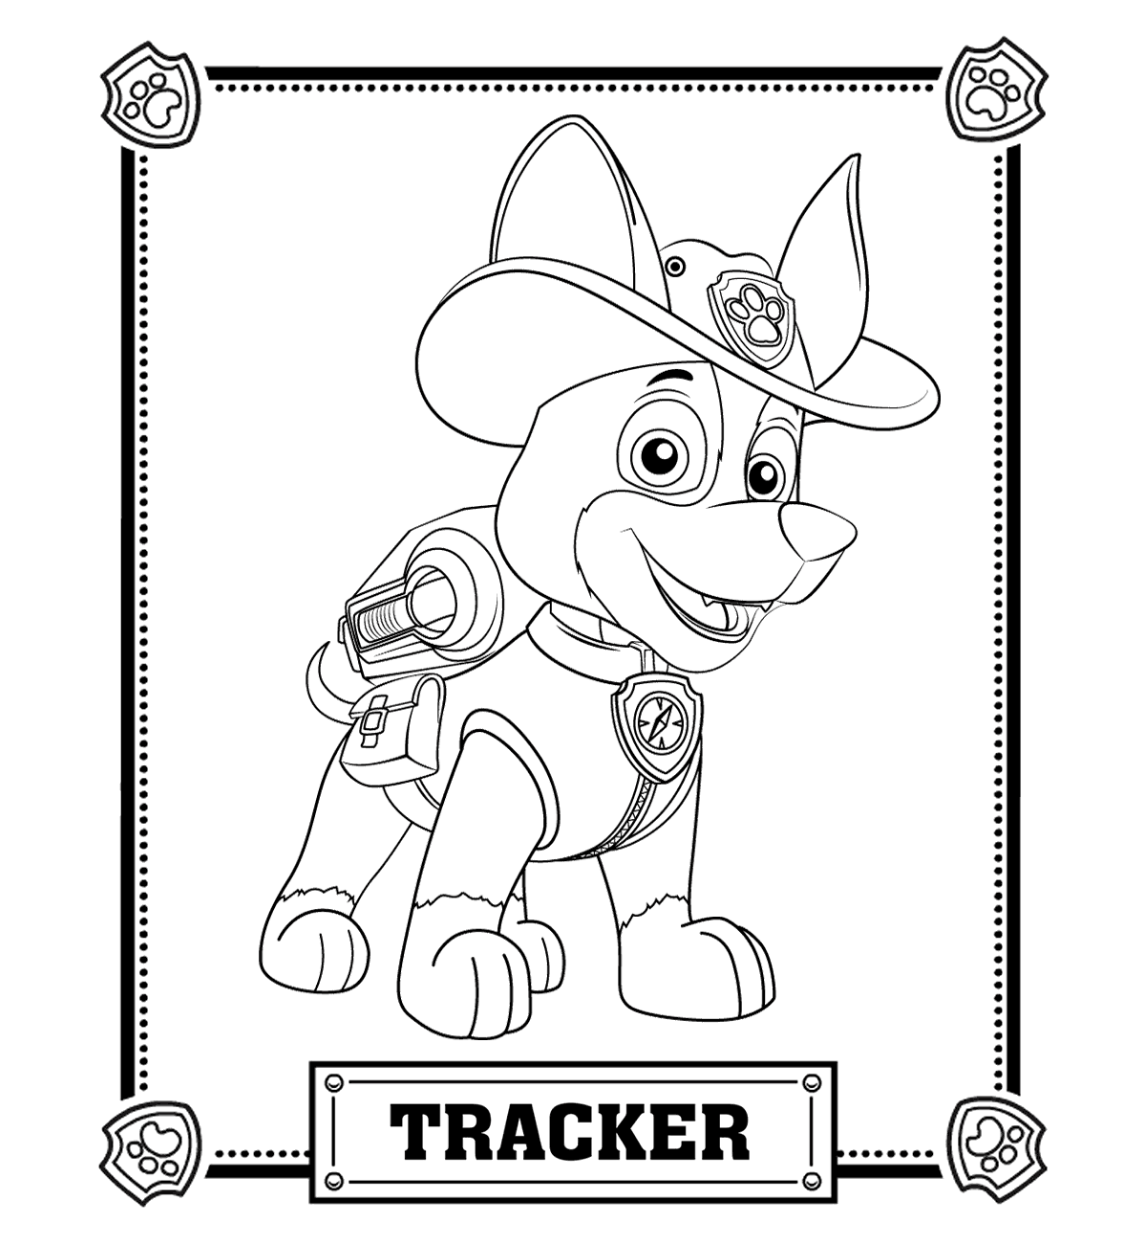 Paw Patrol Tracker Coloring Pages Trevon Pinterest Paw